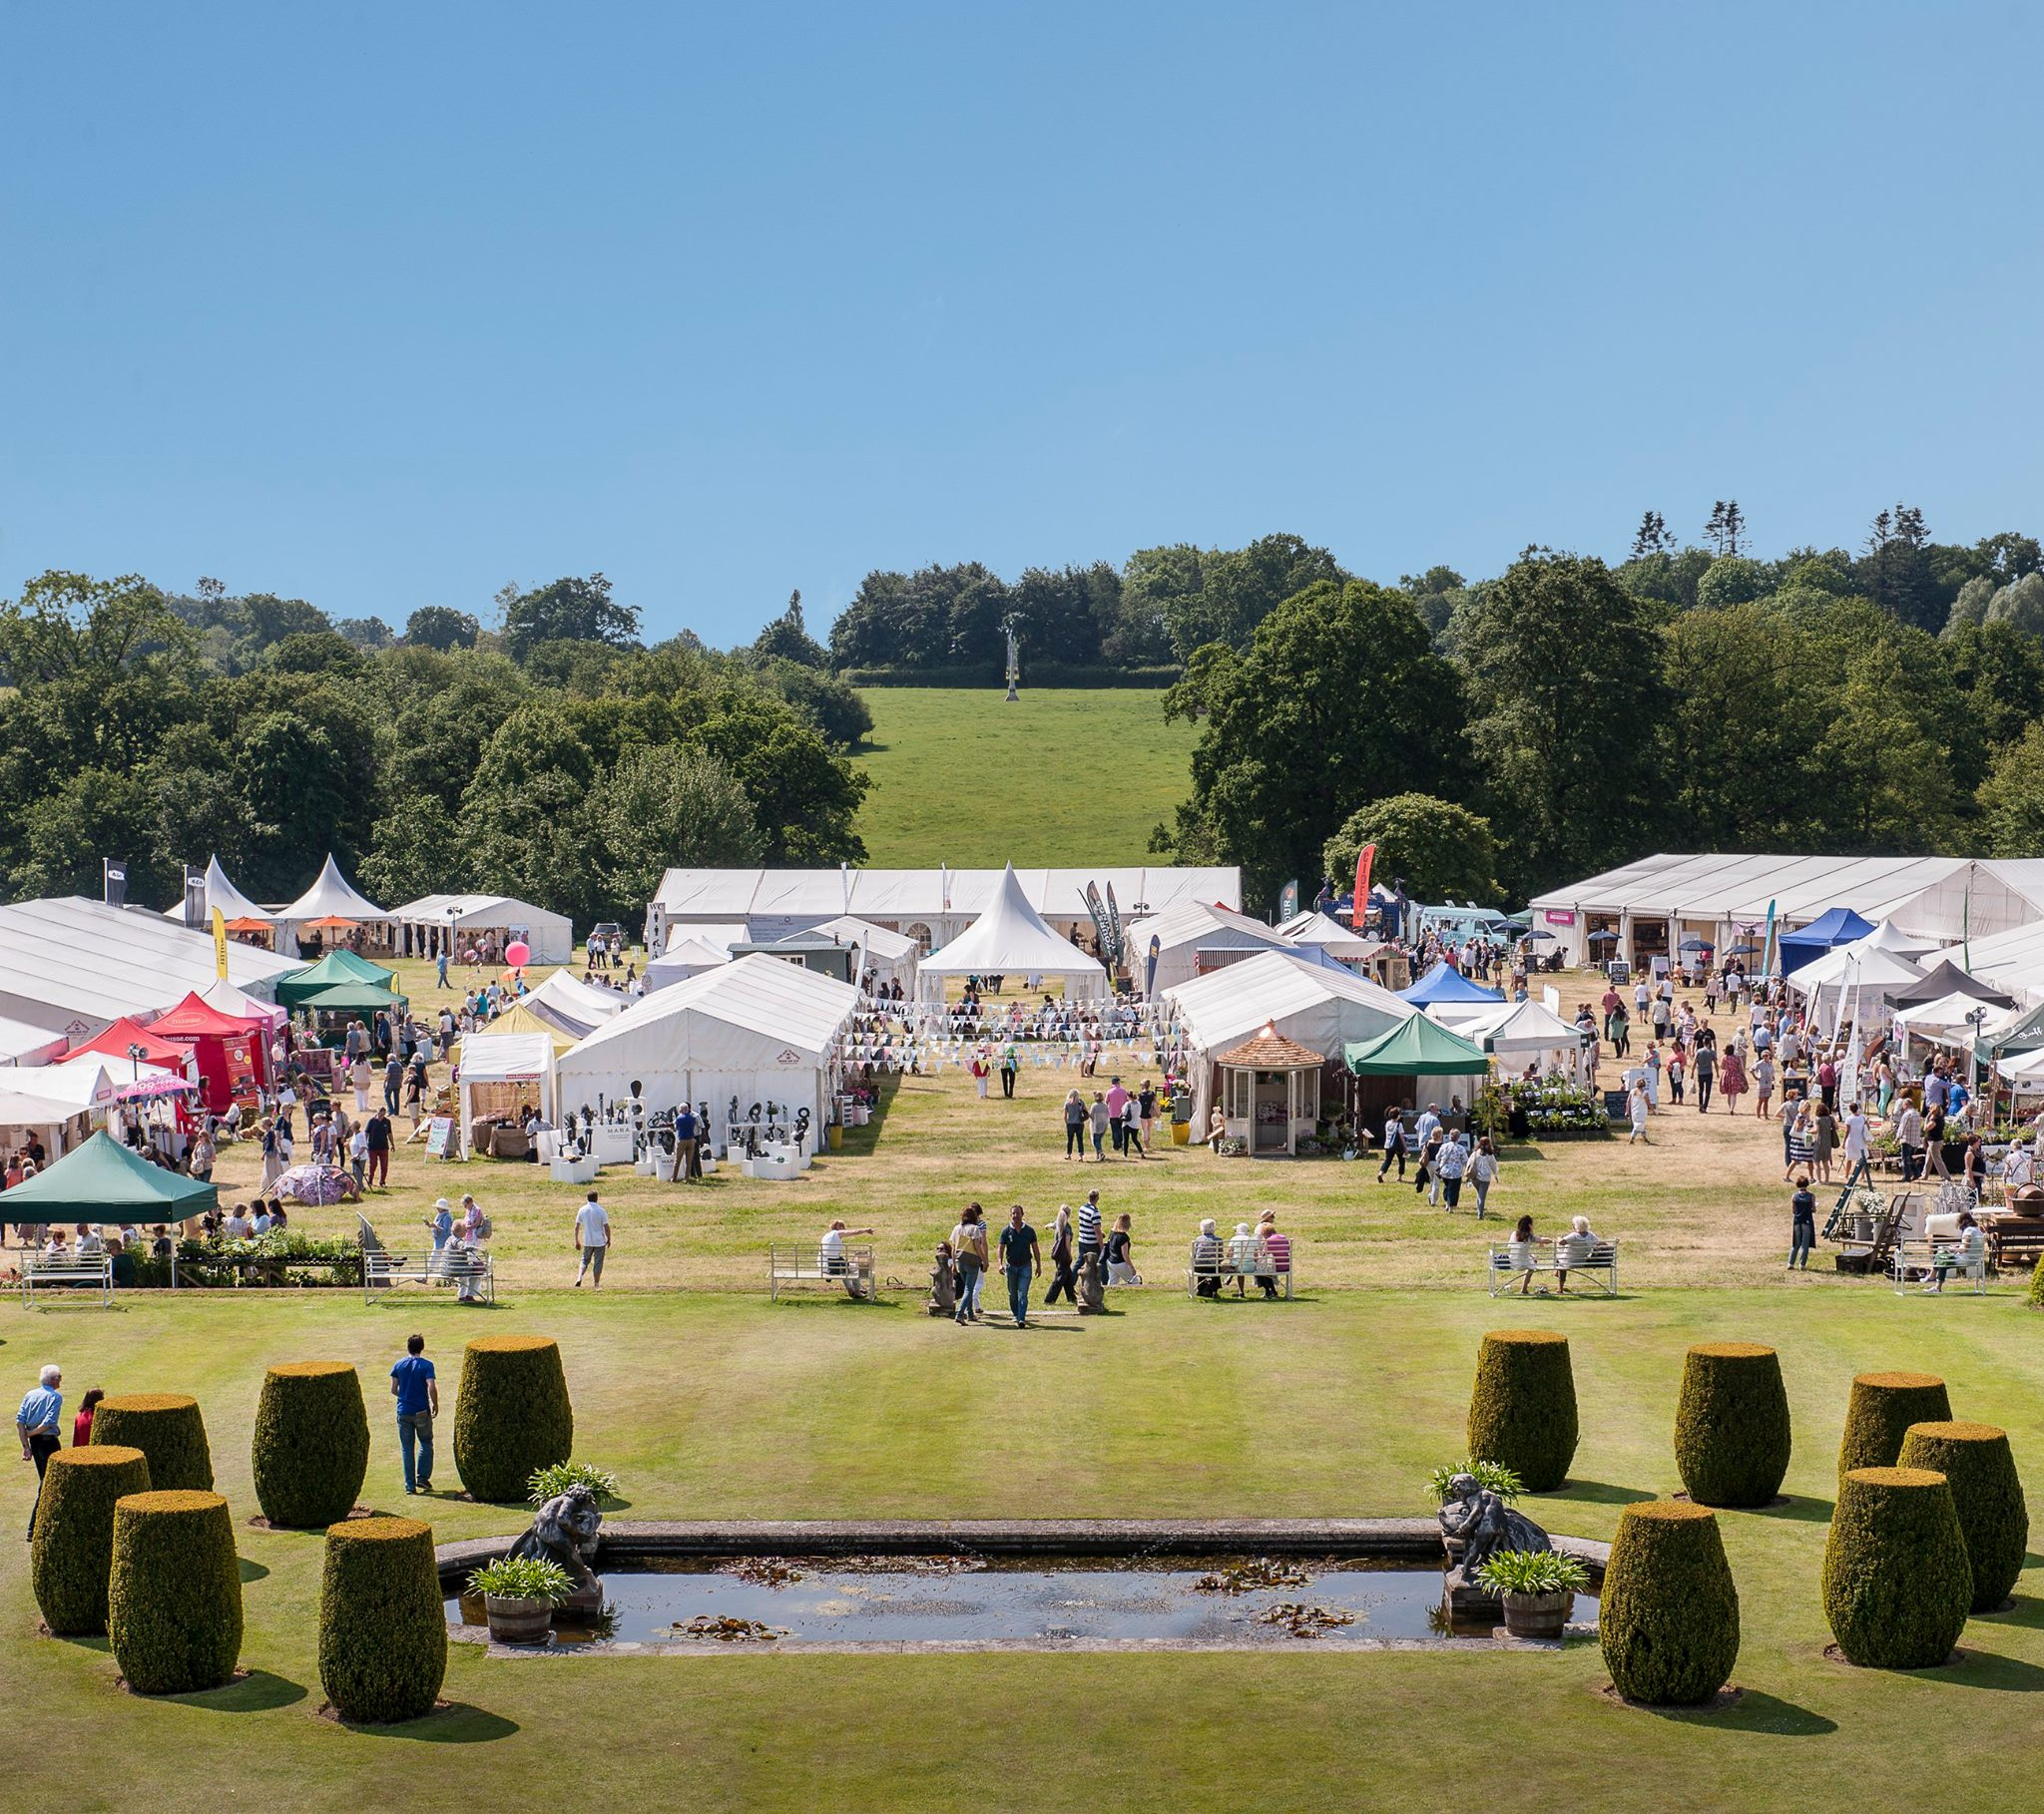 Wealden times Midsummer Fair 2016